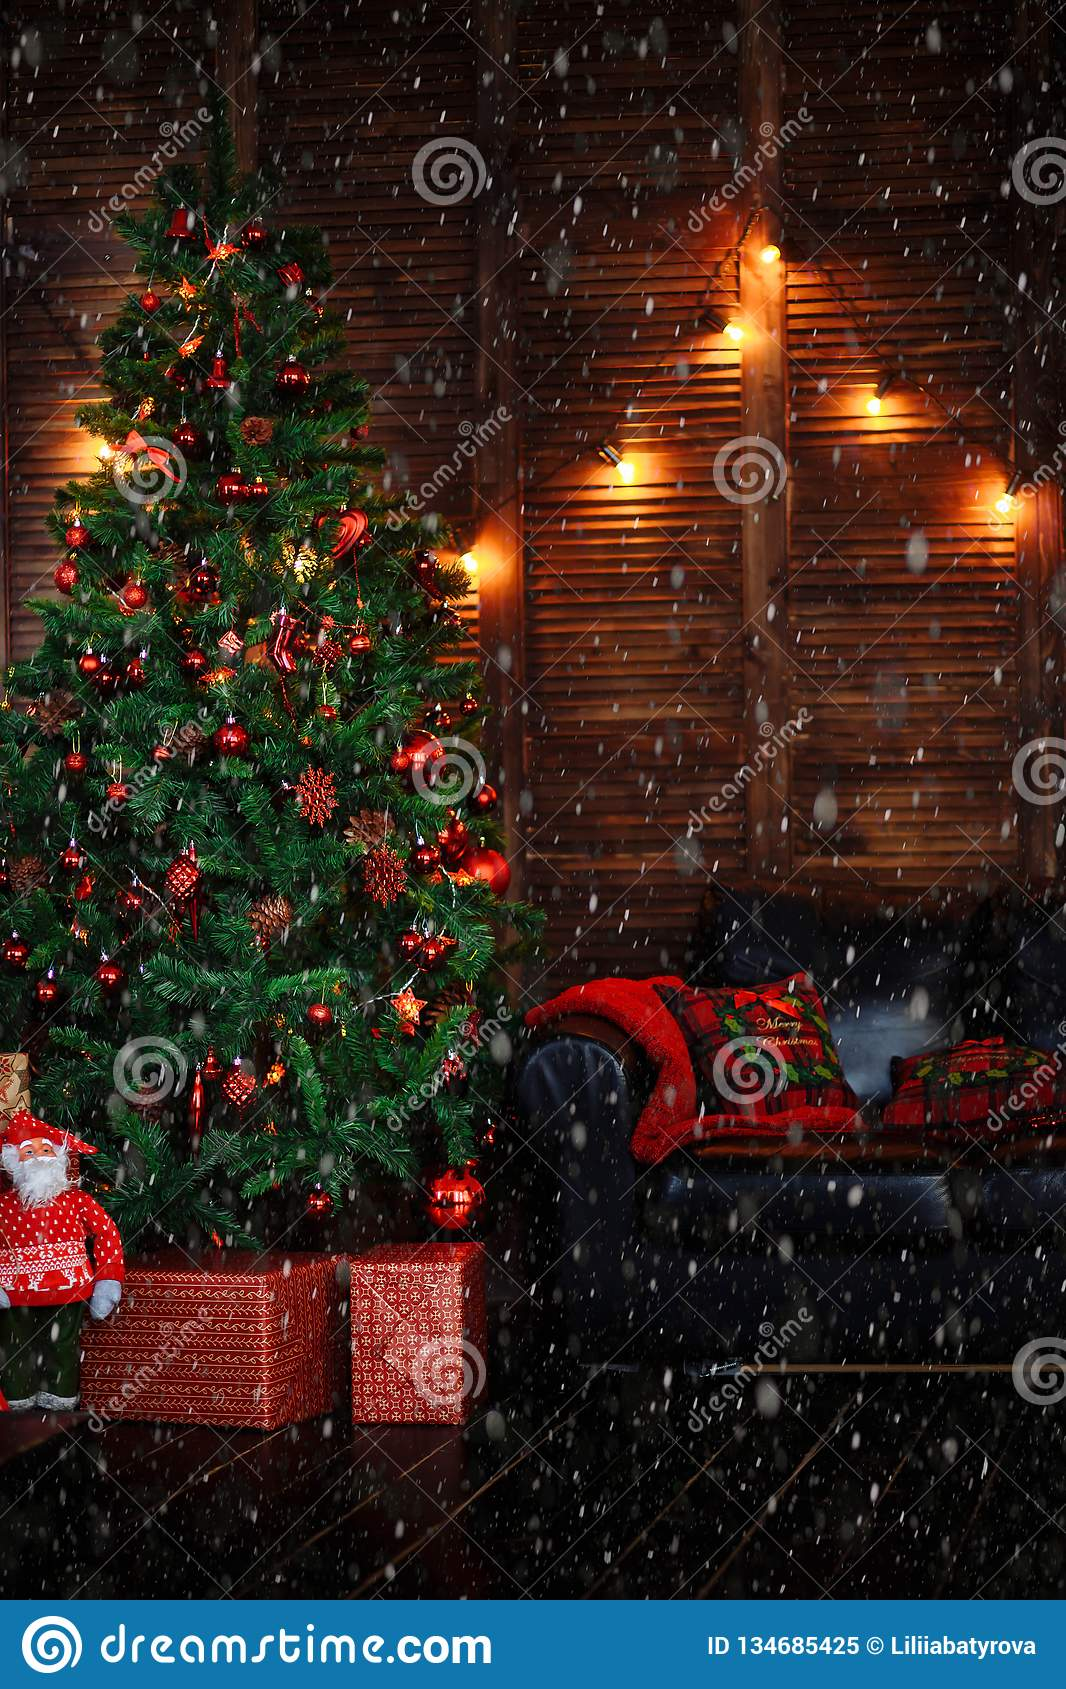 A Christmas Tree Decorated With Toys Ornaments Beads Red Garland